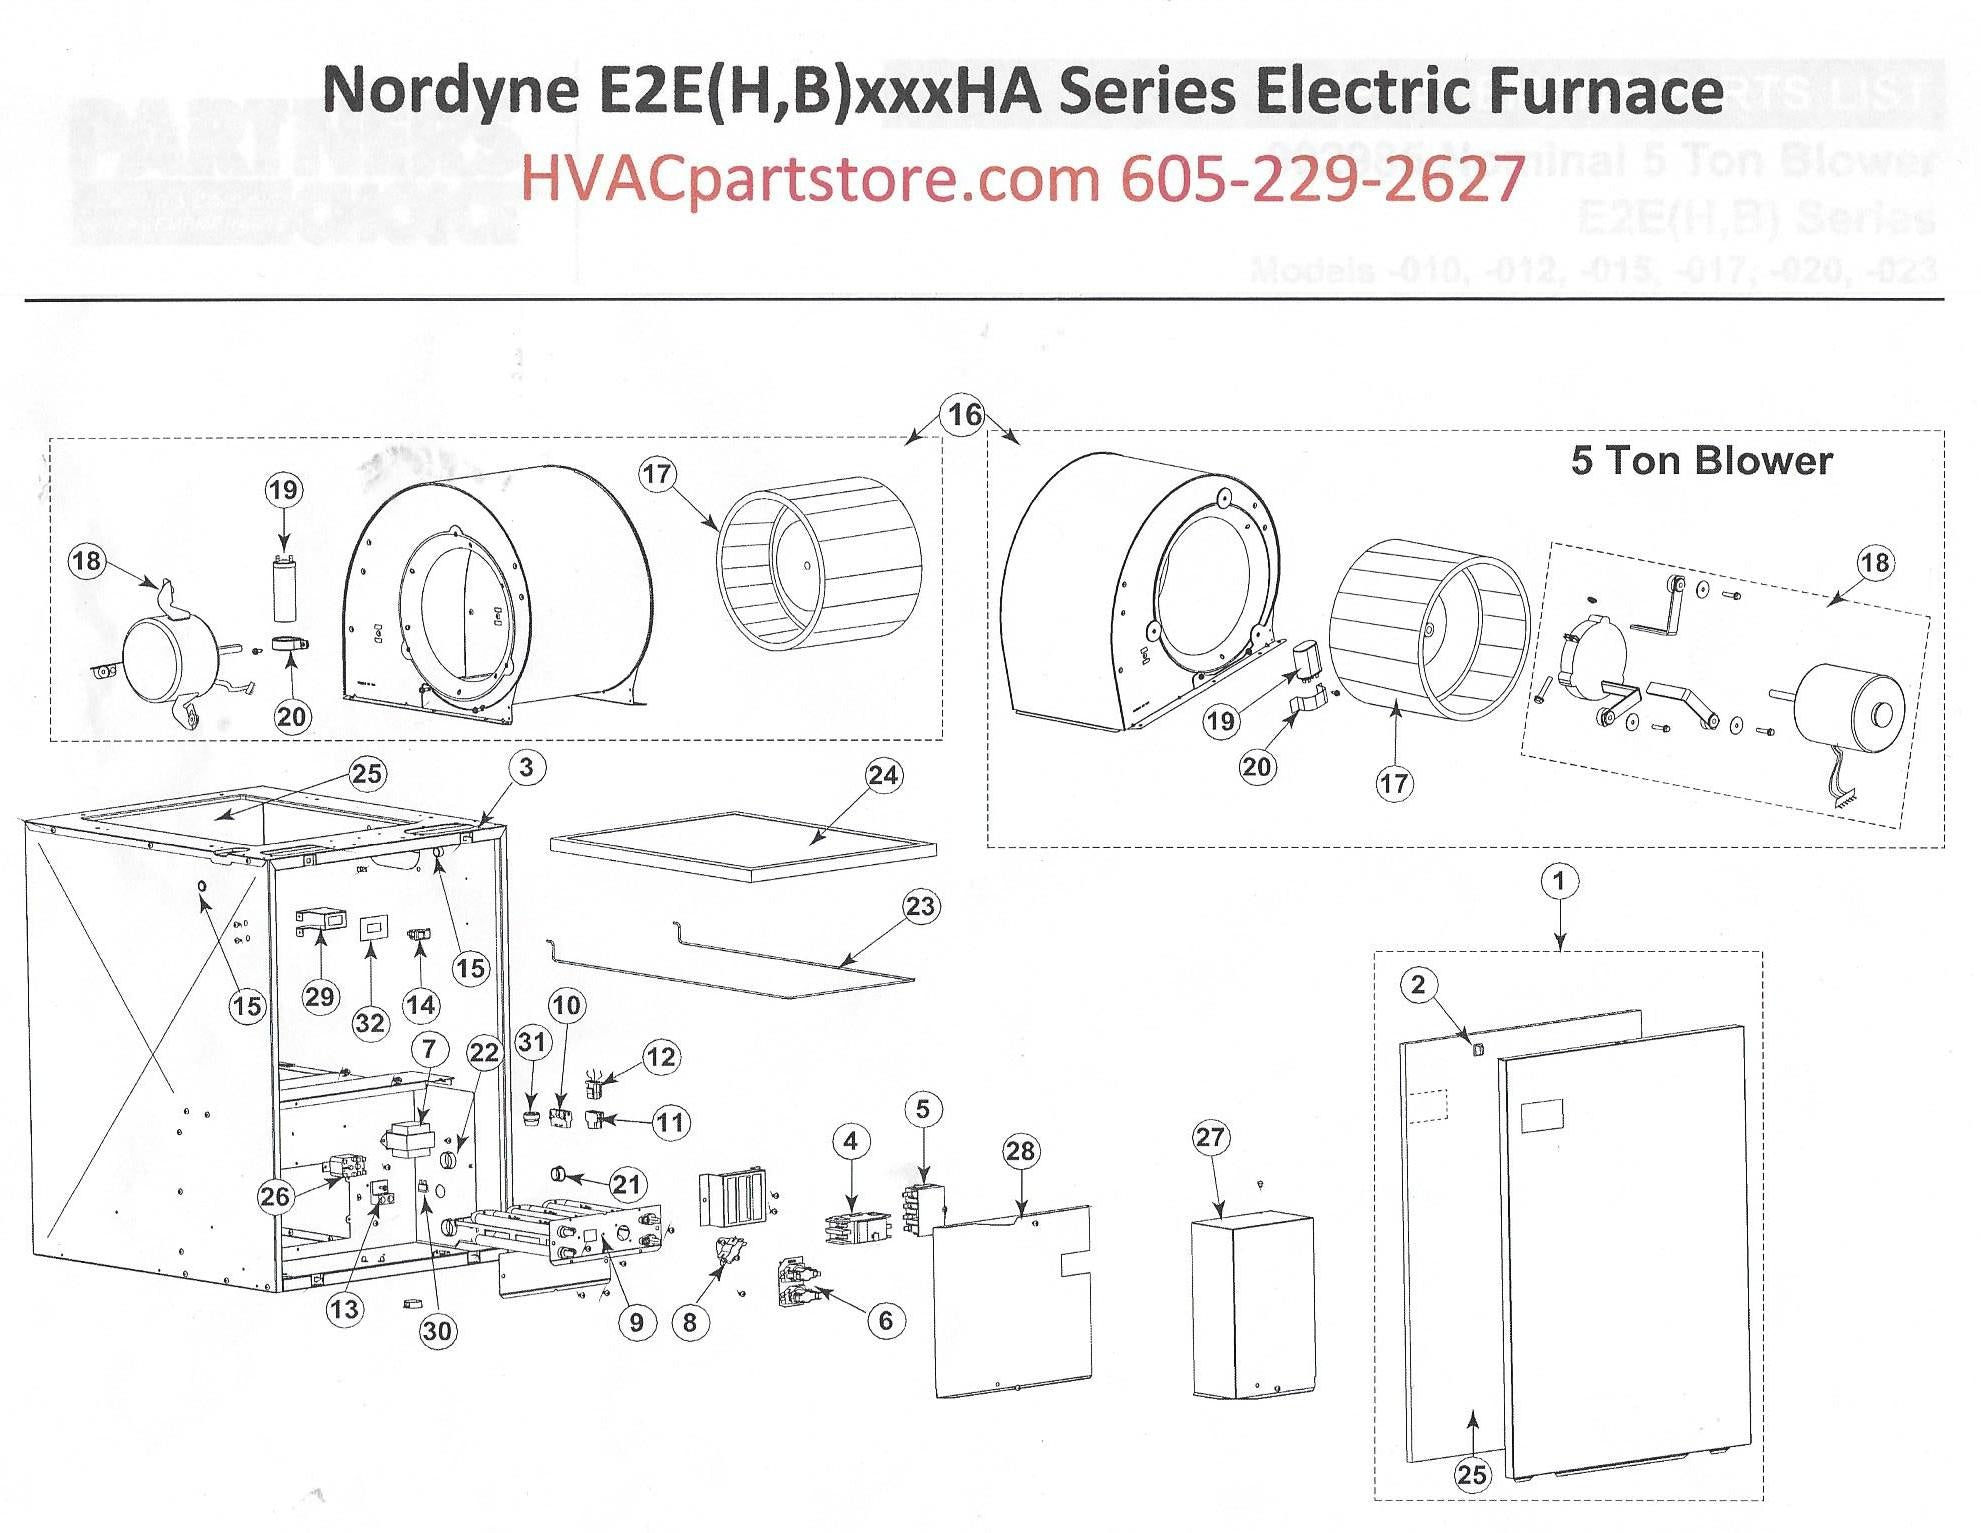 e2eh020ha nordyne electric furnace parts hvacpartstore click here to view a  parts listing for the e2eh020ha which includes partial wiring diagrams that  we